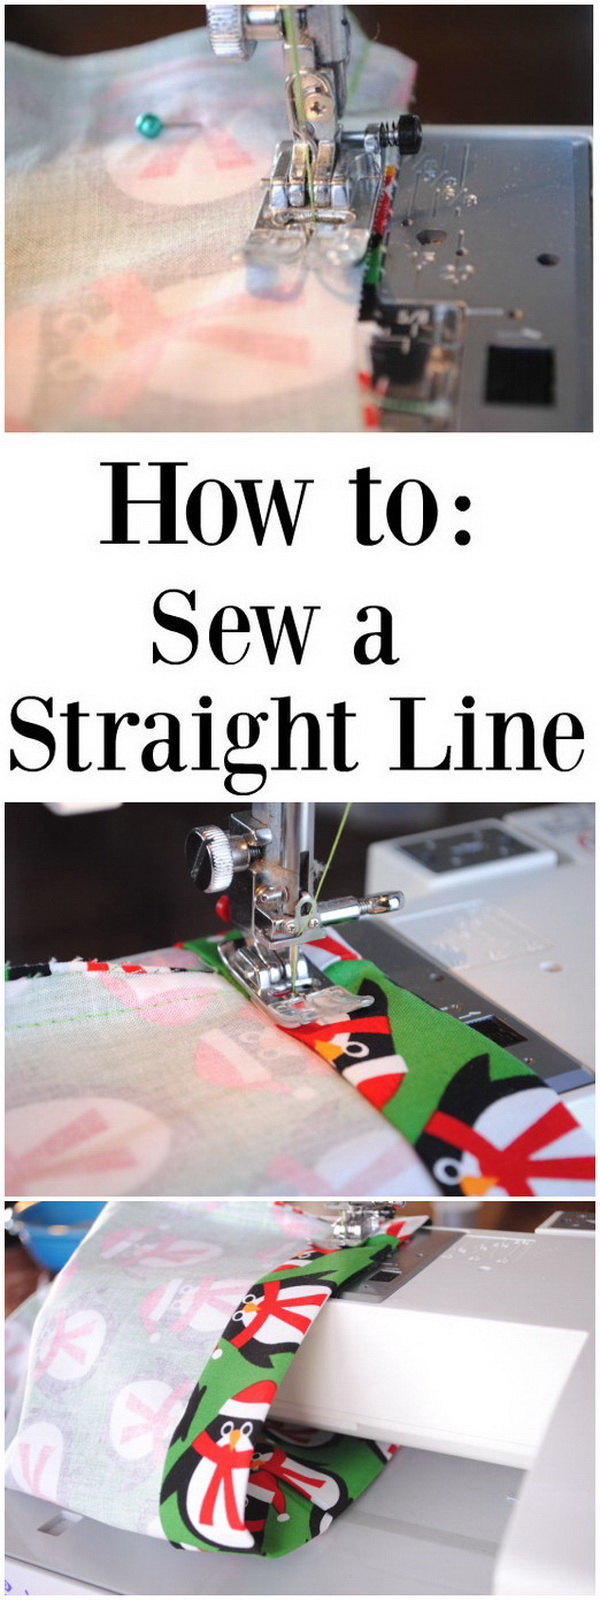 Best Sewing Tips & Tricks: How To Sew A Straight Line.